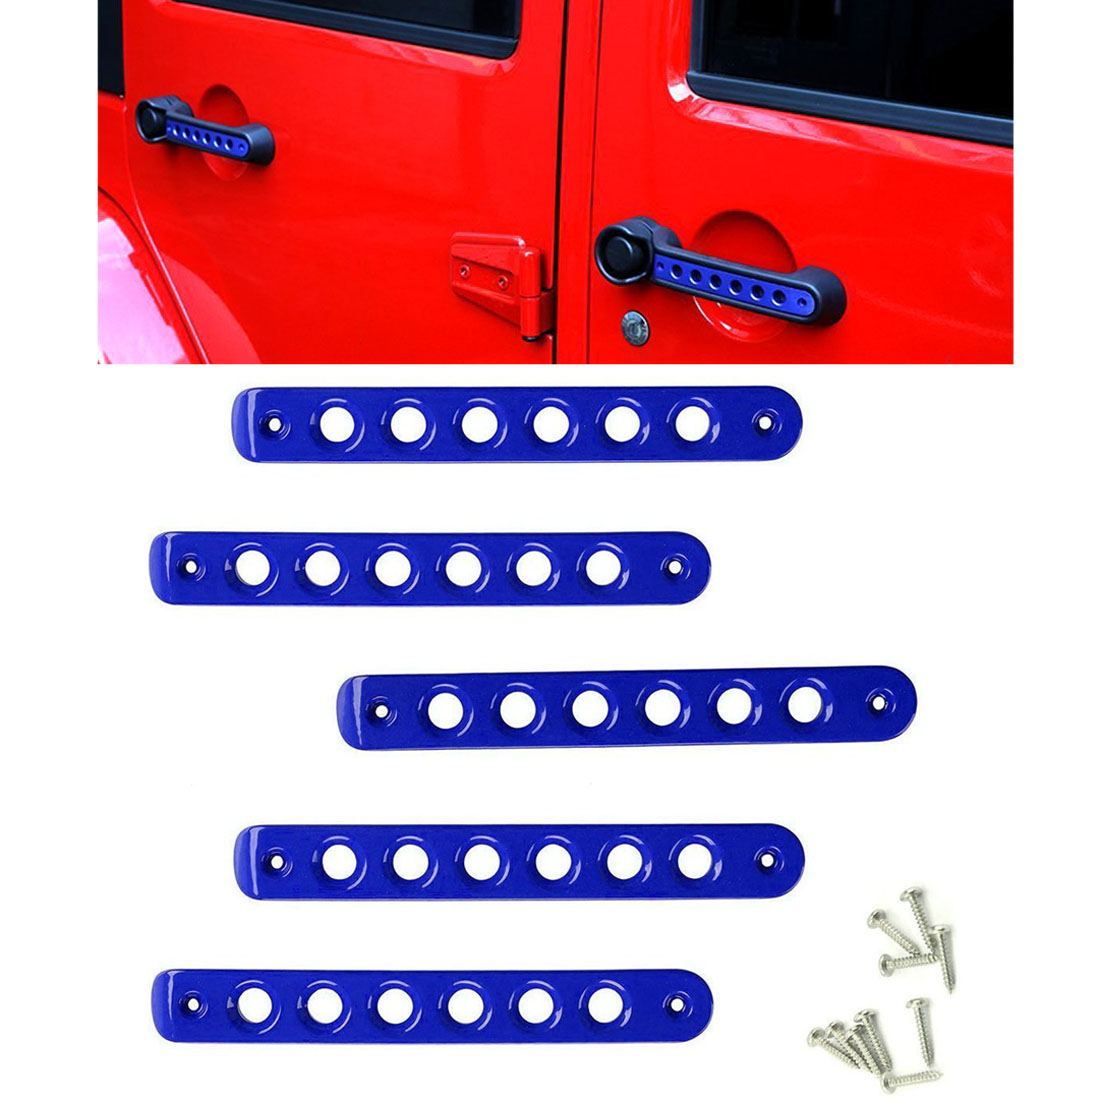 Jeep Grab Handle Inserts Cover 5 Pcs Aluminum Front /& Rear Door Red Handle Decoration Trim for 2007-2016 4 Door Jeep Wrangler JK /& Unlimited